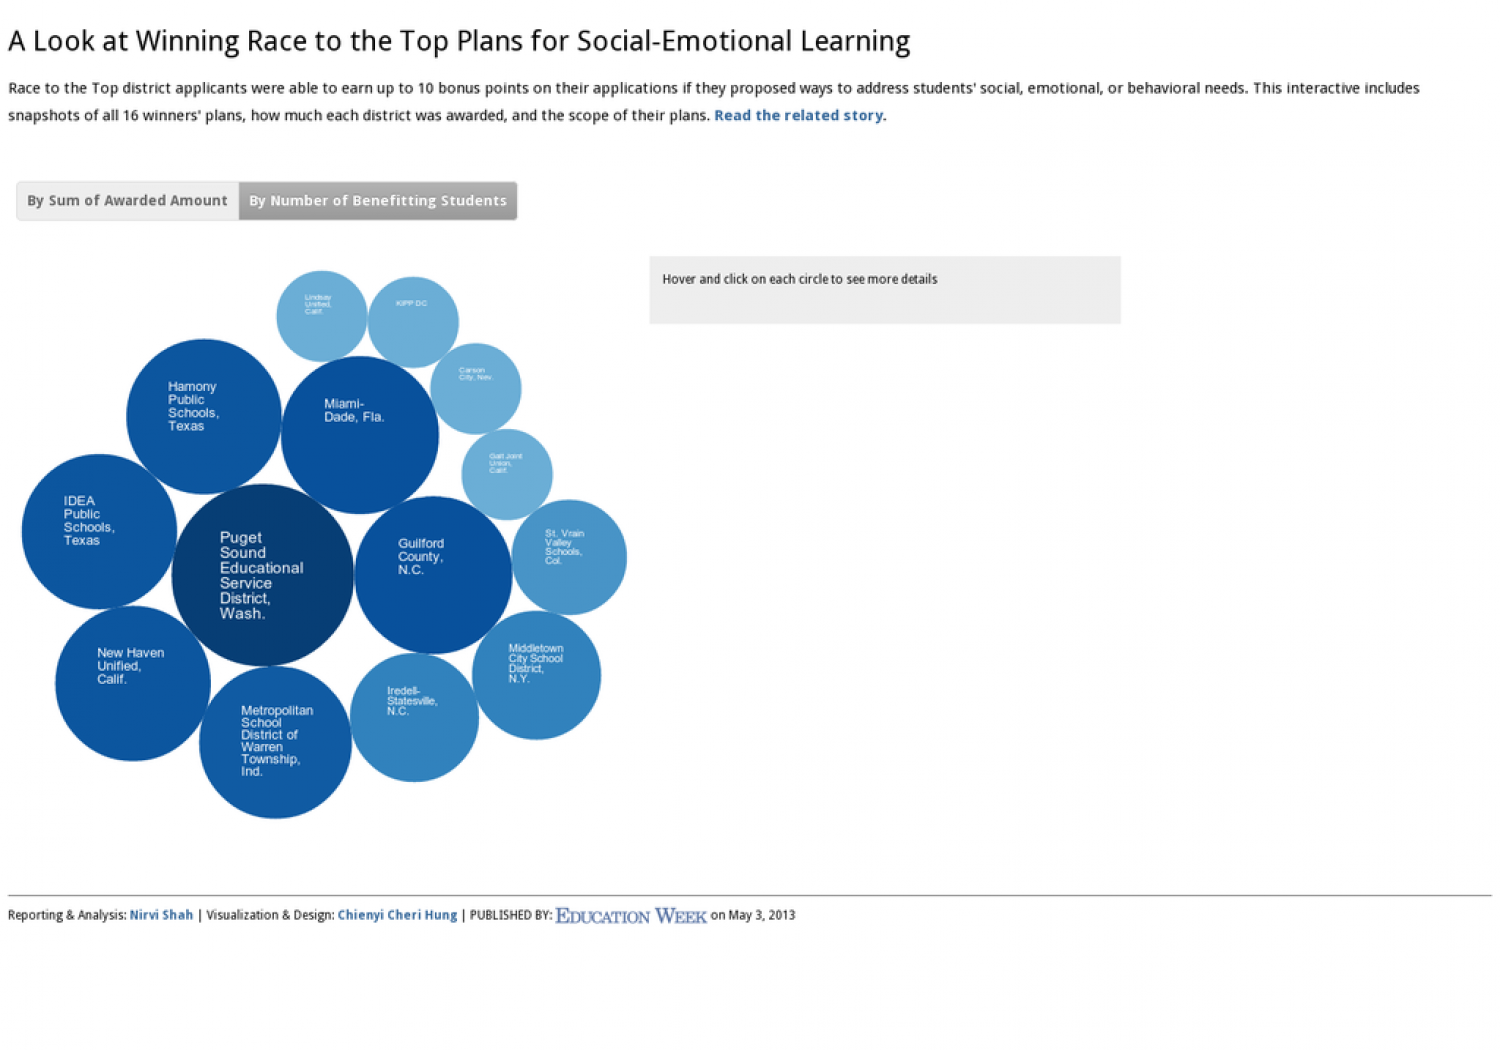 A Look at Winning Race to the Top Plans for Social-Emotional Learning Infographic